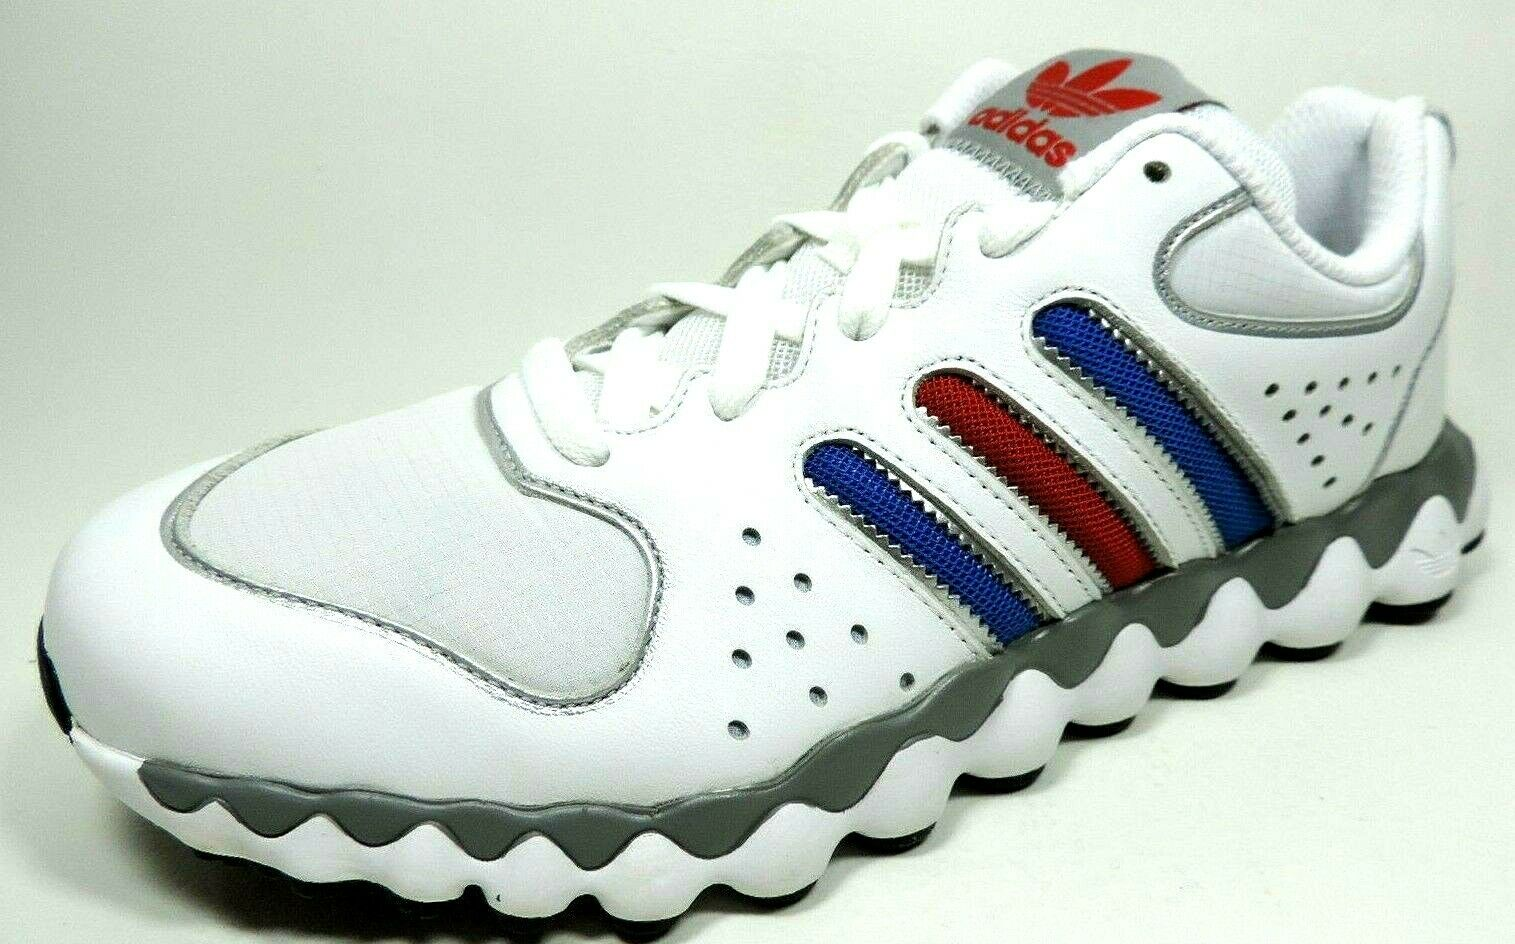 Adidas Mega Softcell RL G51197 Mens Shoes Running Sneakers Leather White Blue